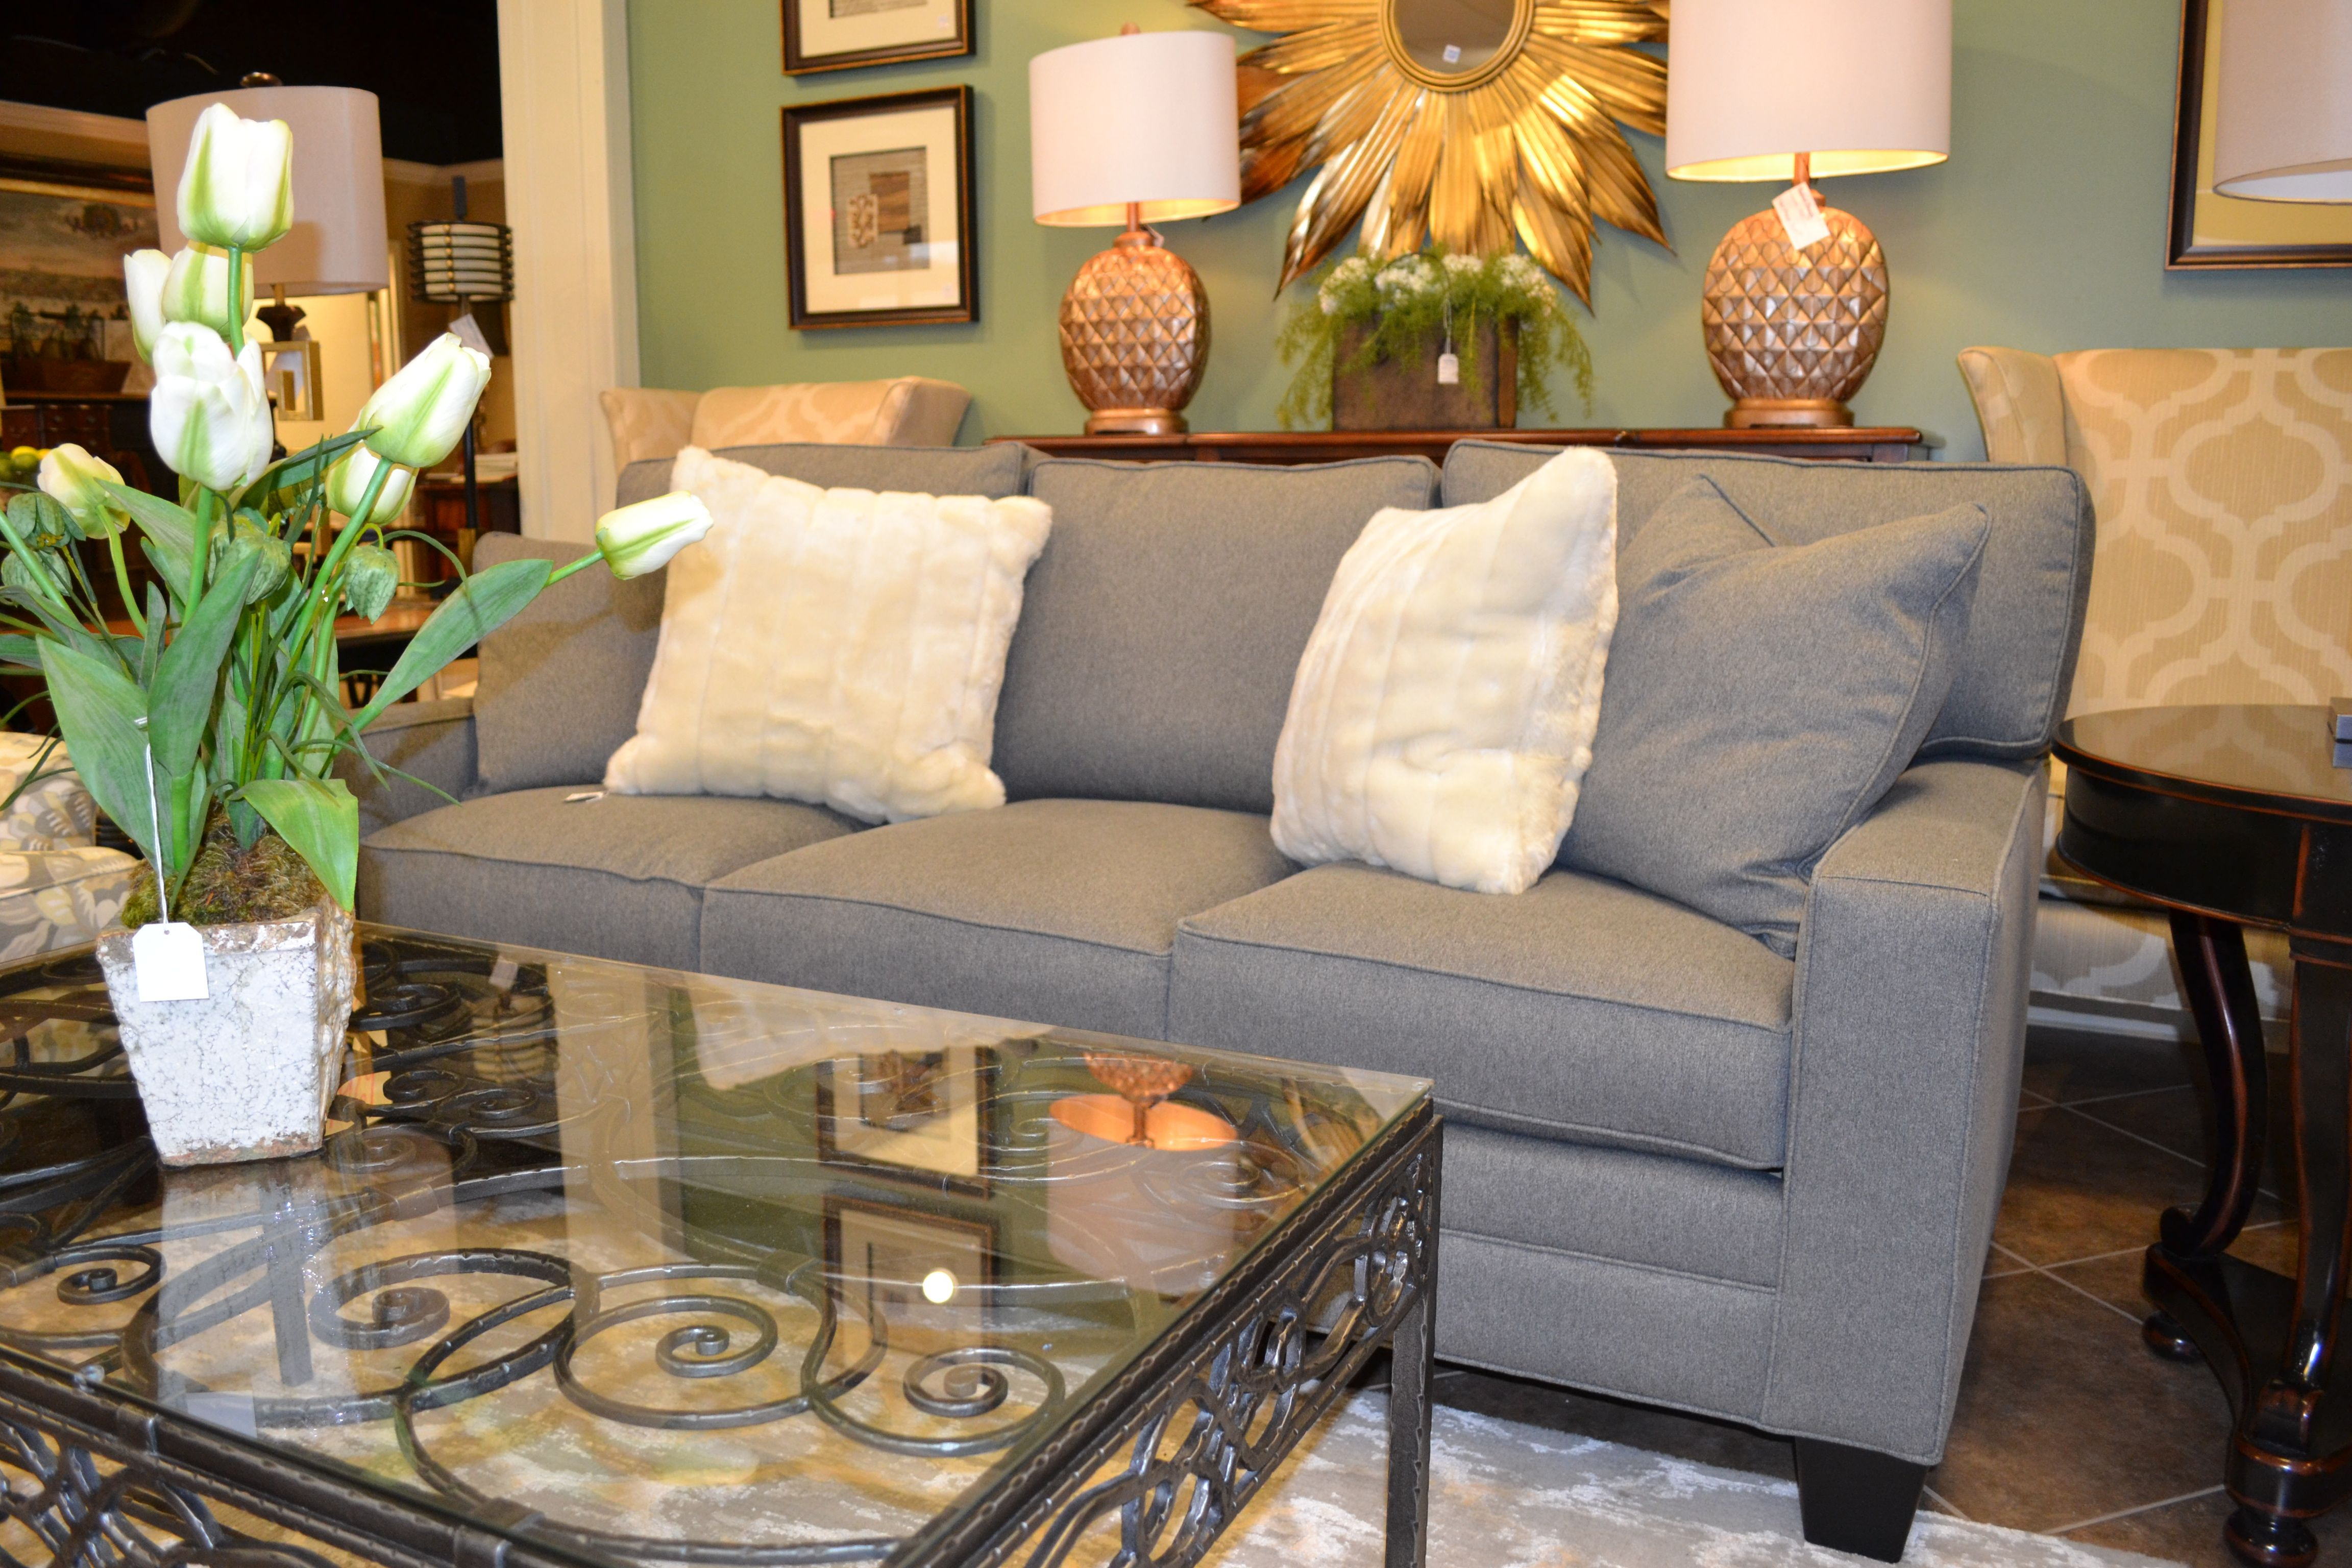 Ordinaire Shubert Furniture Carries The Finest Collection Of Living Room Furniture,  Couches, Sofas, Recliners, In Leather U0026 Upholstery In The St.